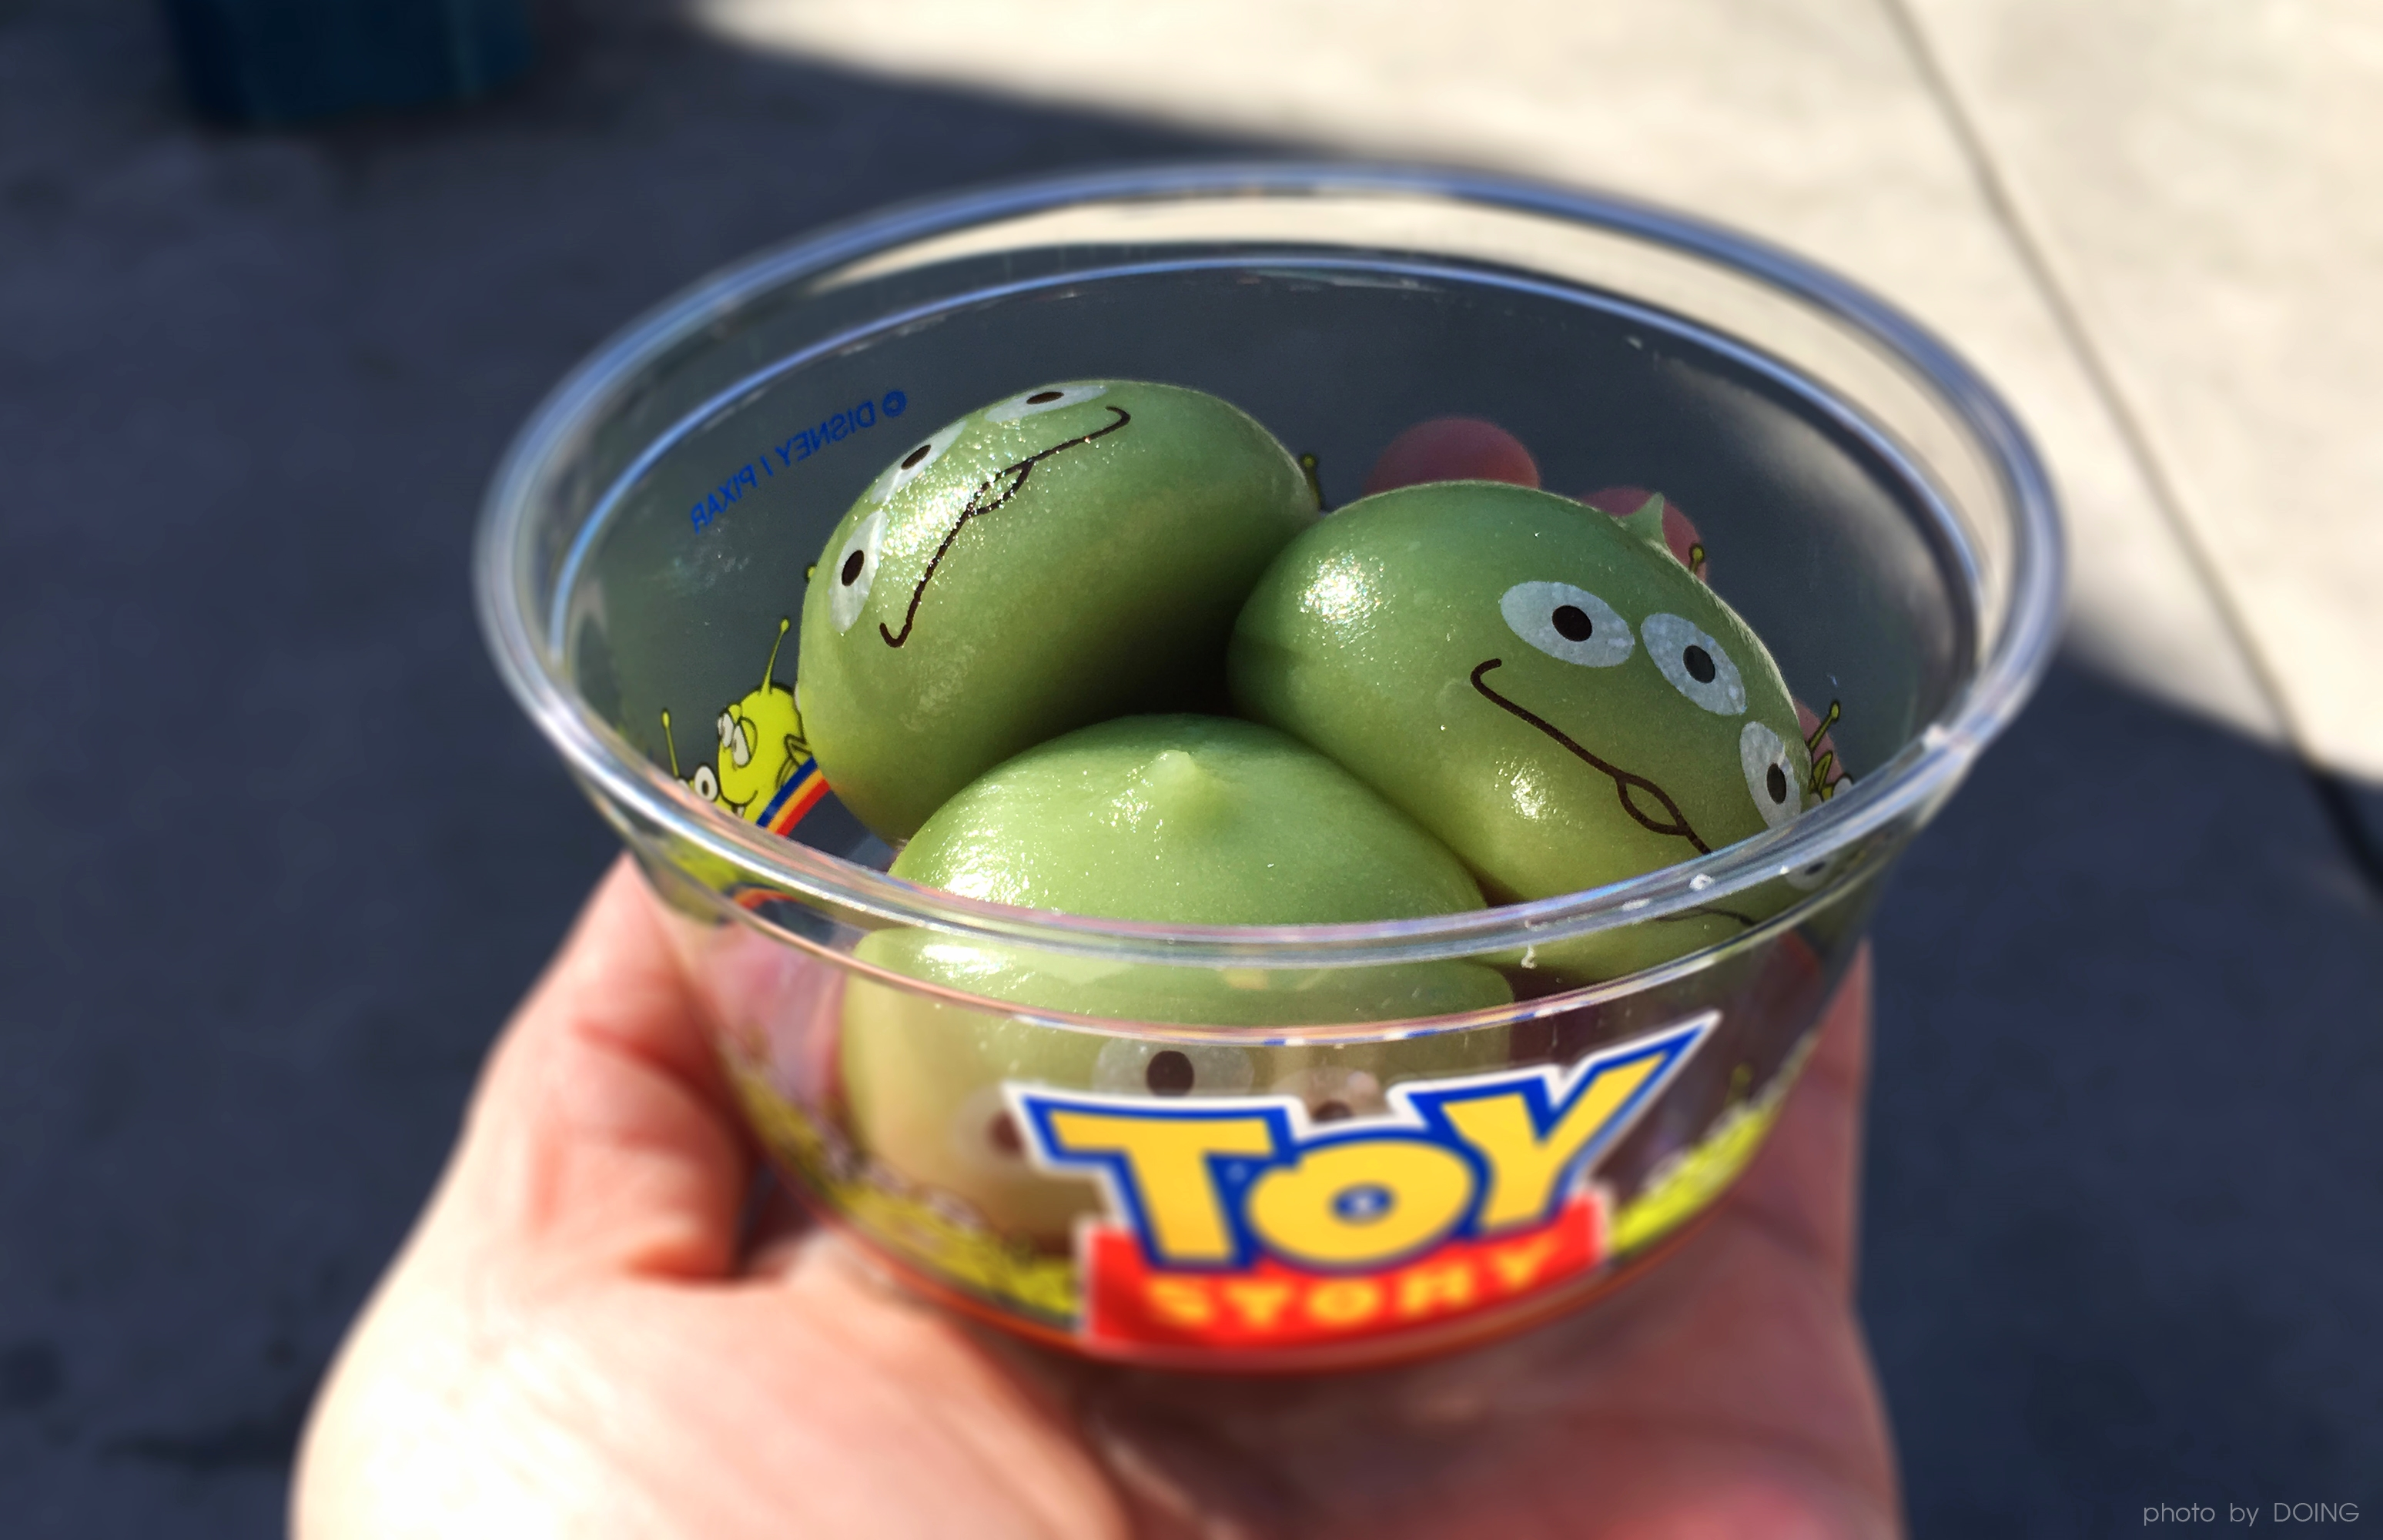 Toy Story's Little Green Aliens